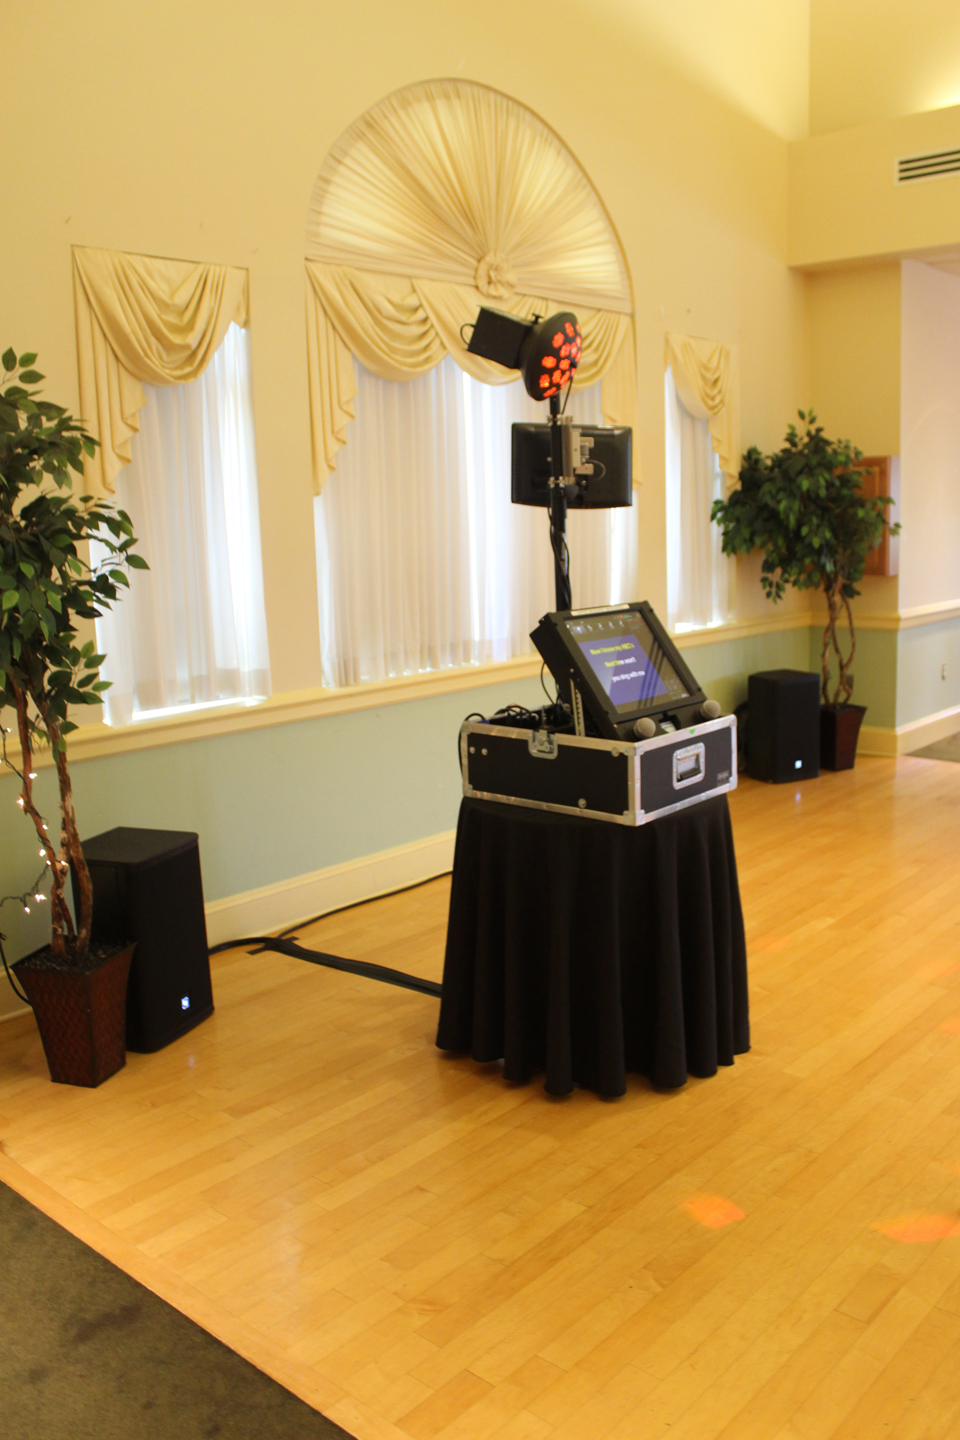 karaoke machine rental in nj